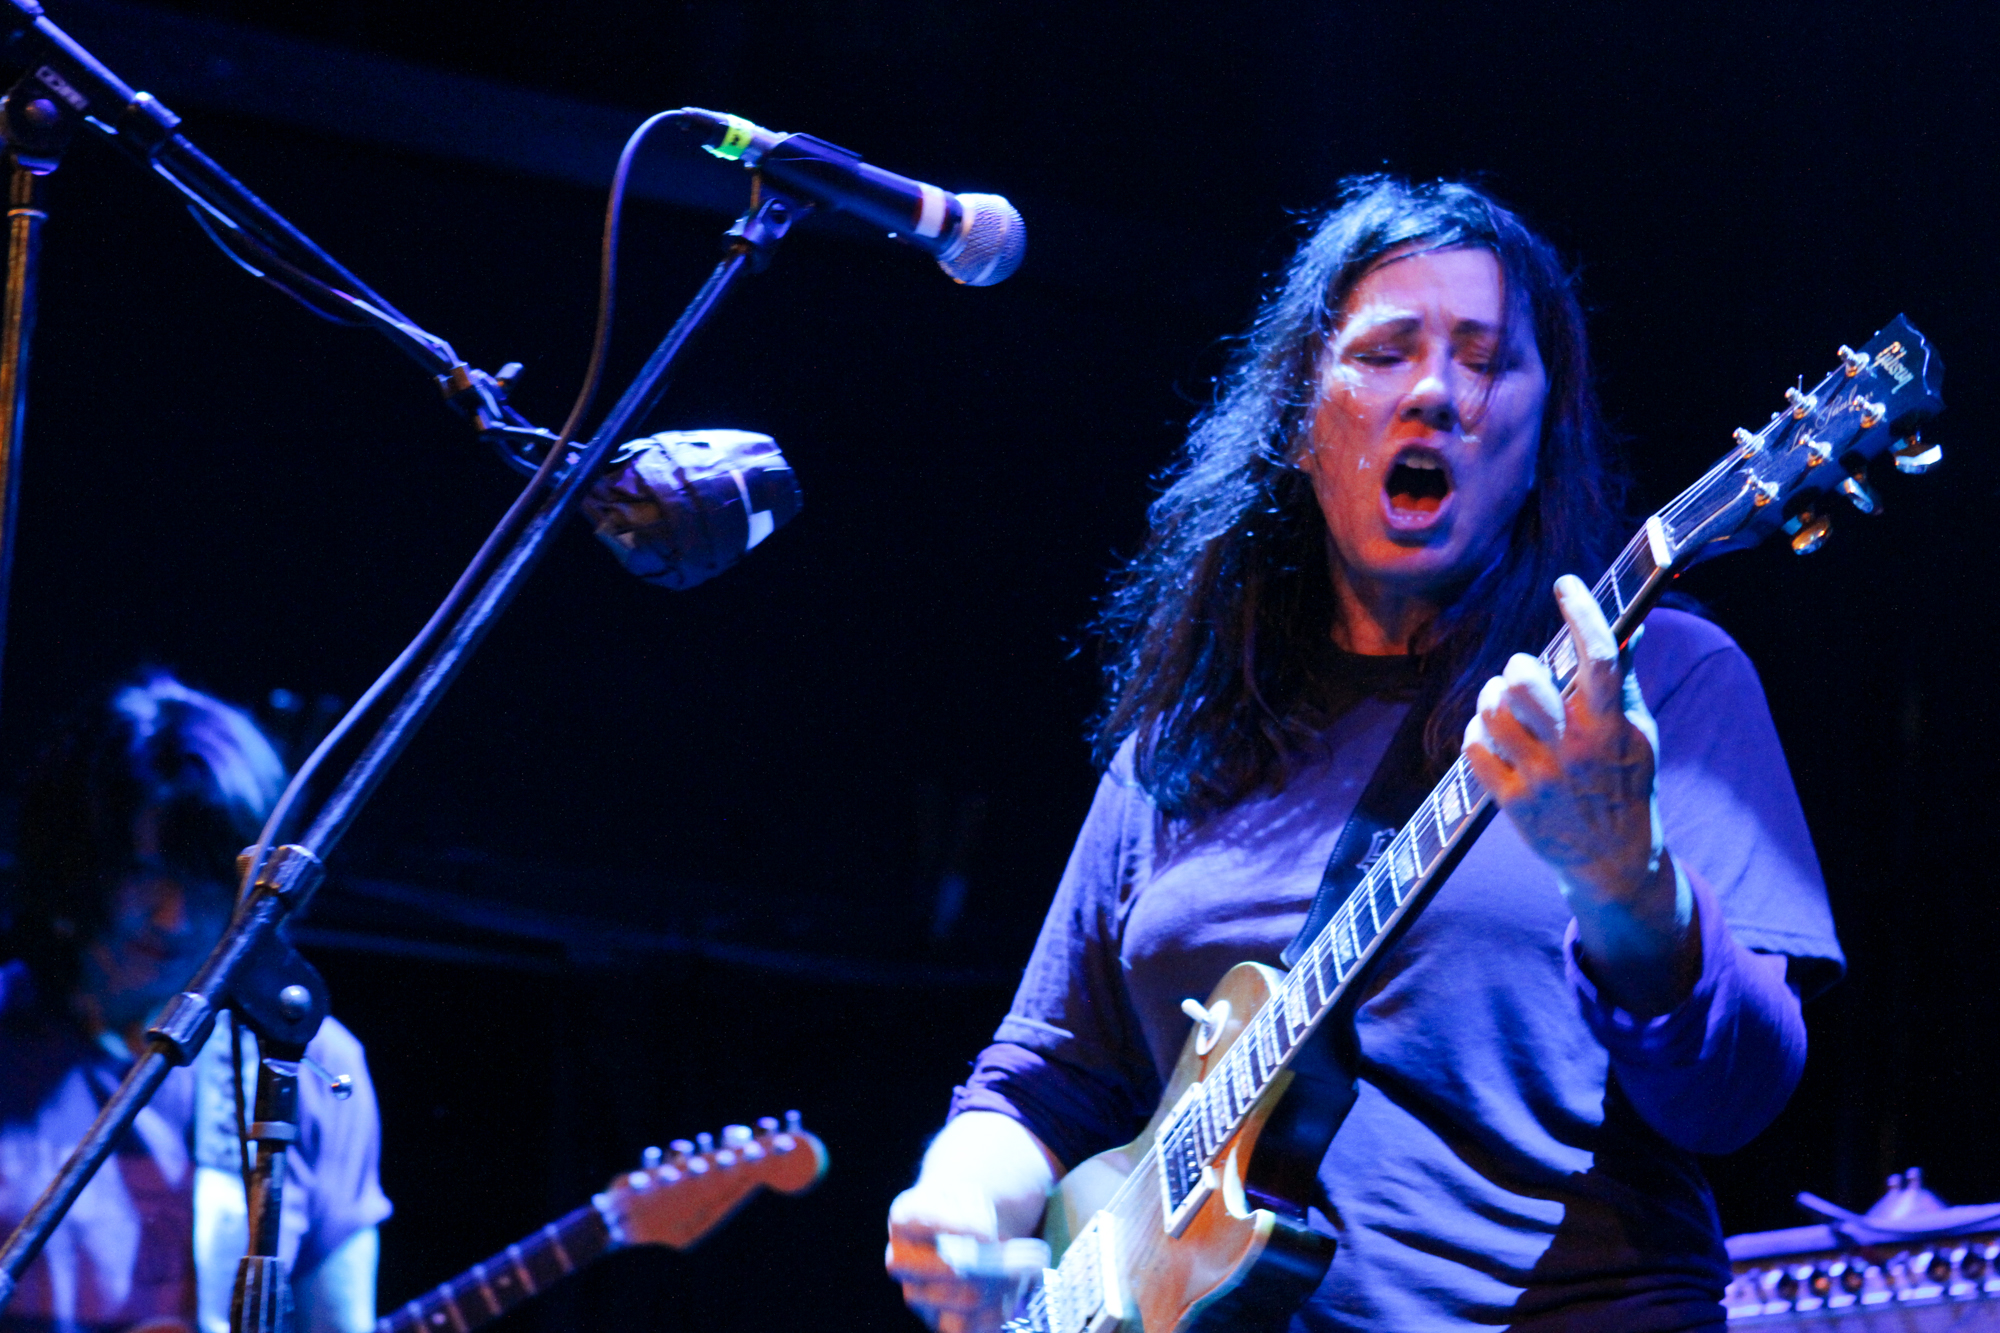 The Breeders play at Bowery Ballroom in New York, New York on Nov. 5, 2017. (© Michael Katzif - Do not use or republish without prior consent.)